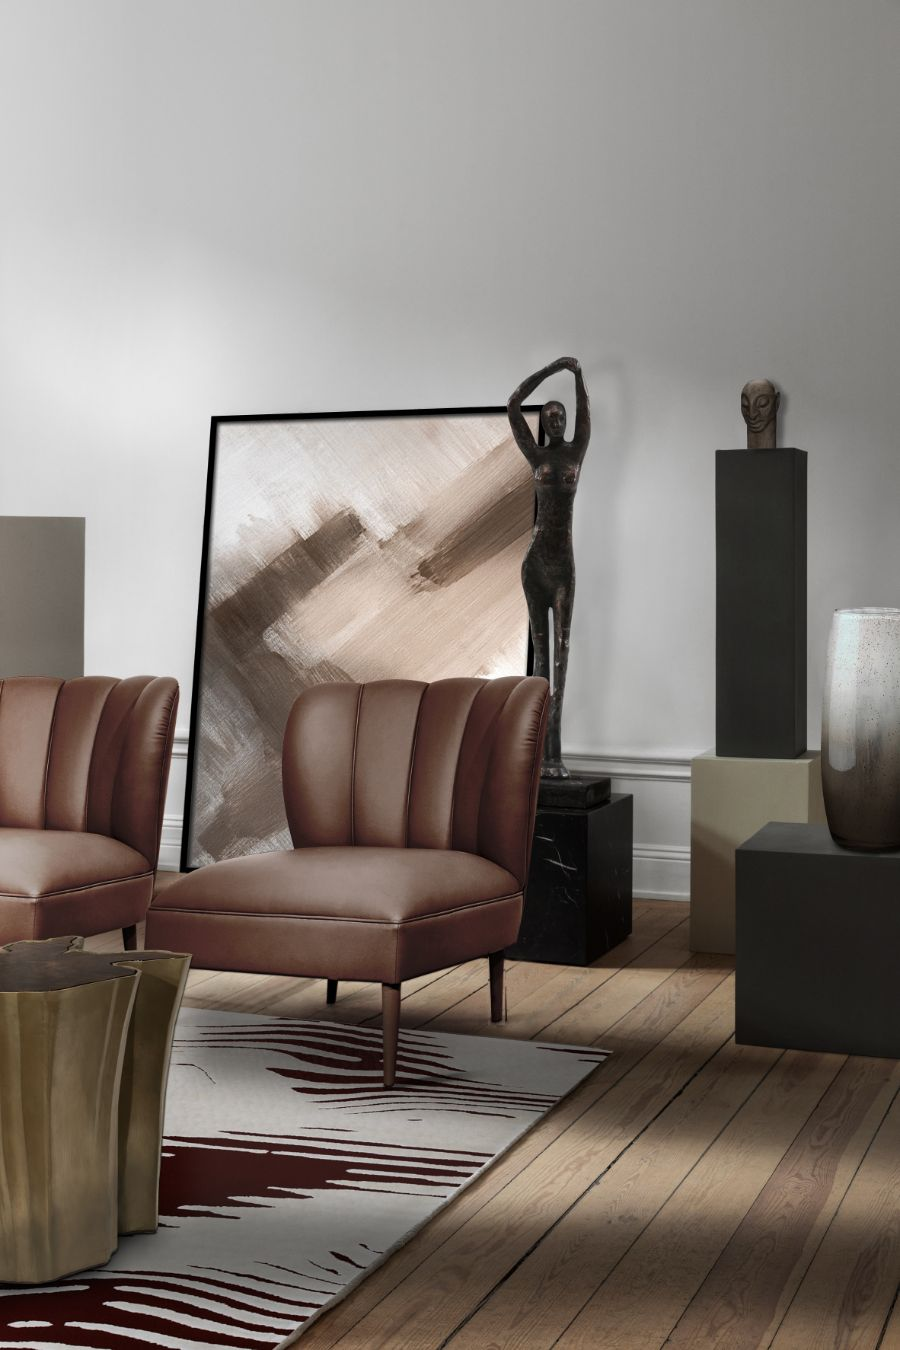 20 Modern Armchairs You Will Need To Get A Fierce Design modern armchairs 20 Modern Armchairs You Will Need To Get A Fierce Design Modern Designed Armchairs Top 20 of Timeless Designs for Every Decor 2